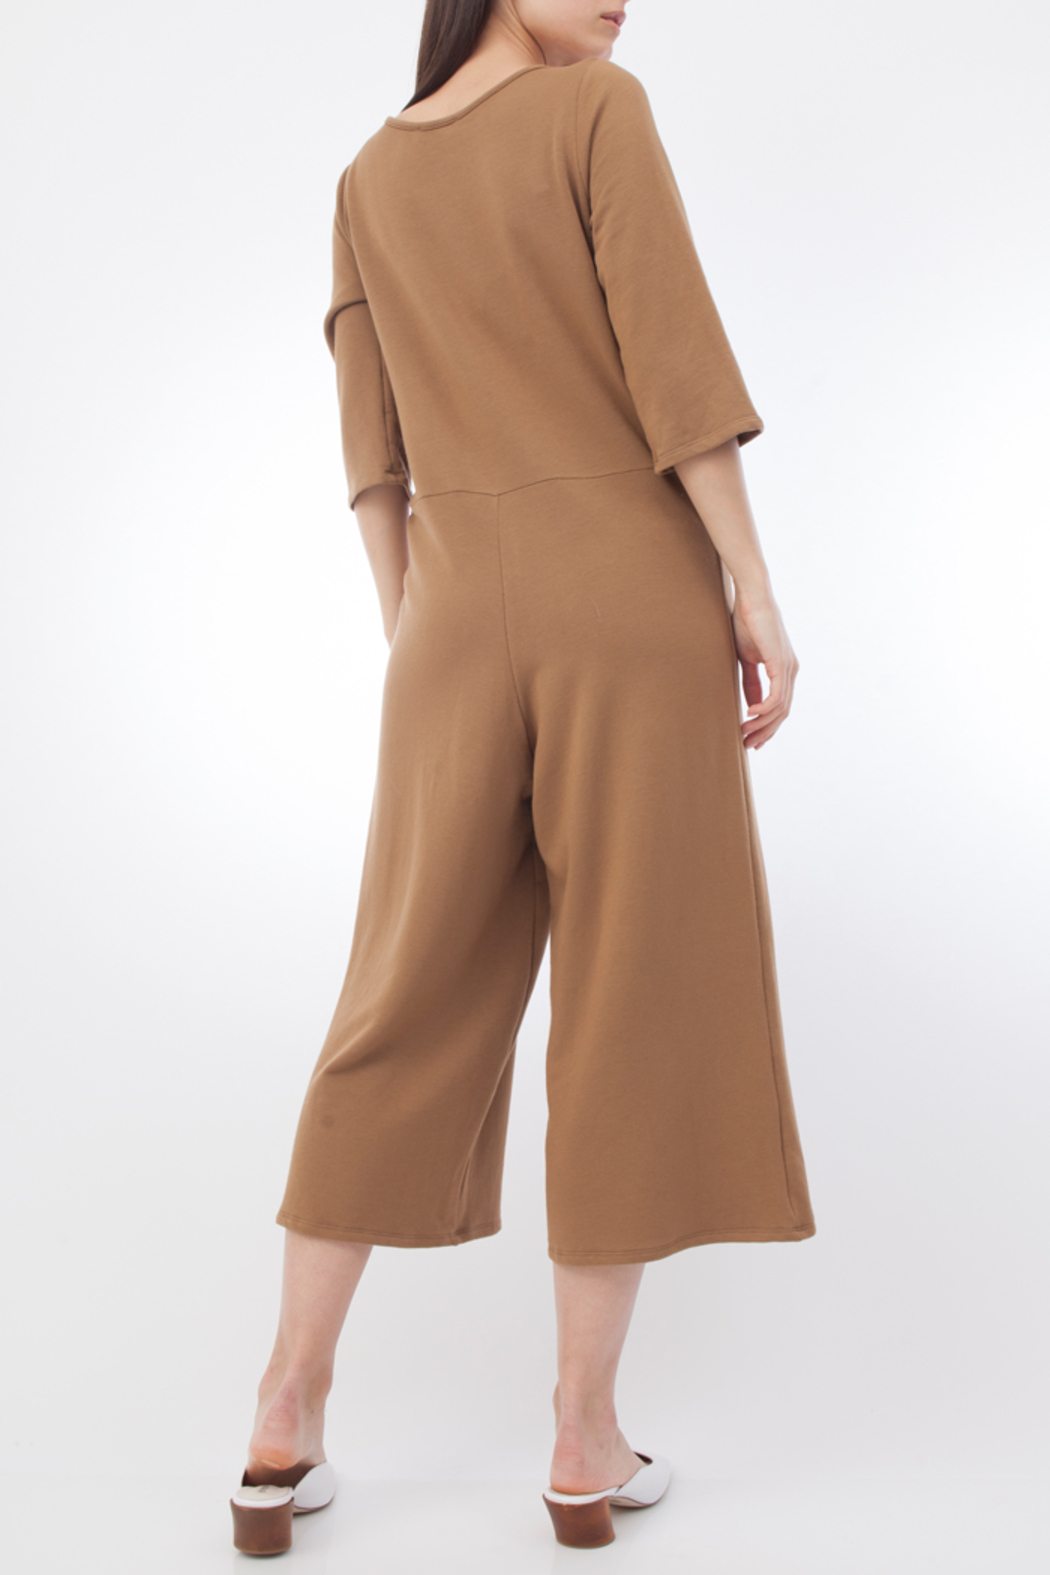 Corinne CORA WRAP CROPPED JUMPSUIT - Front Full Image